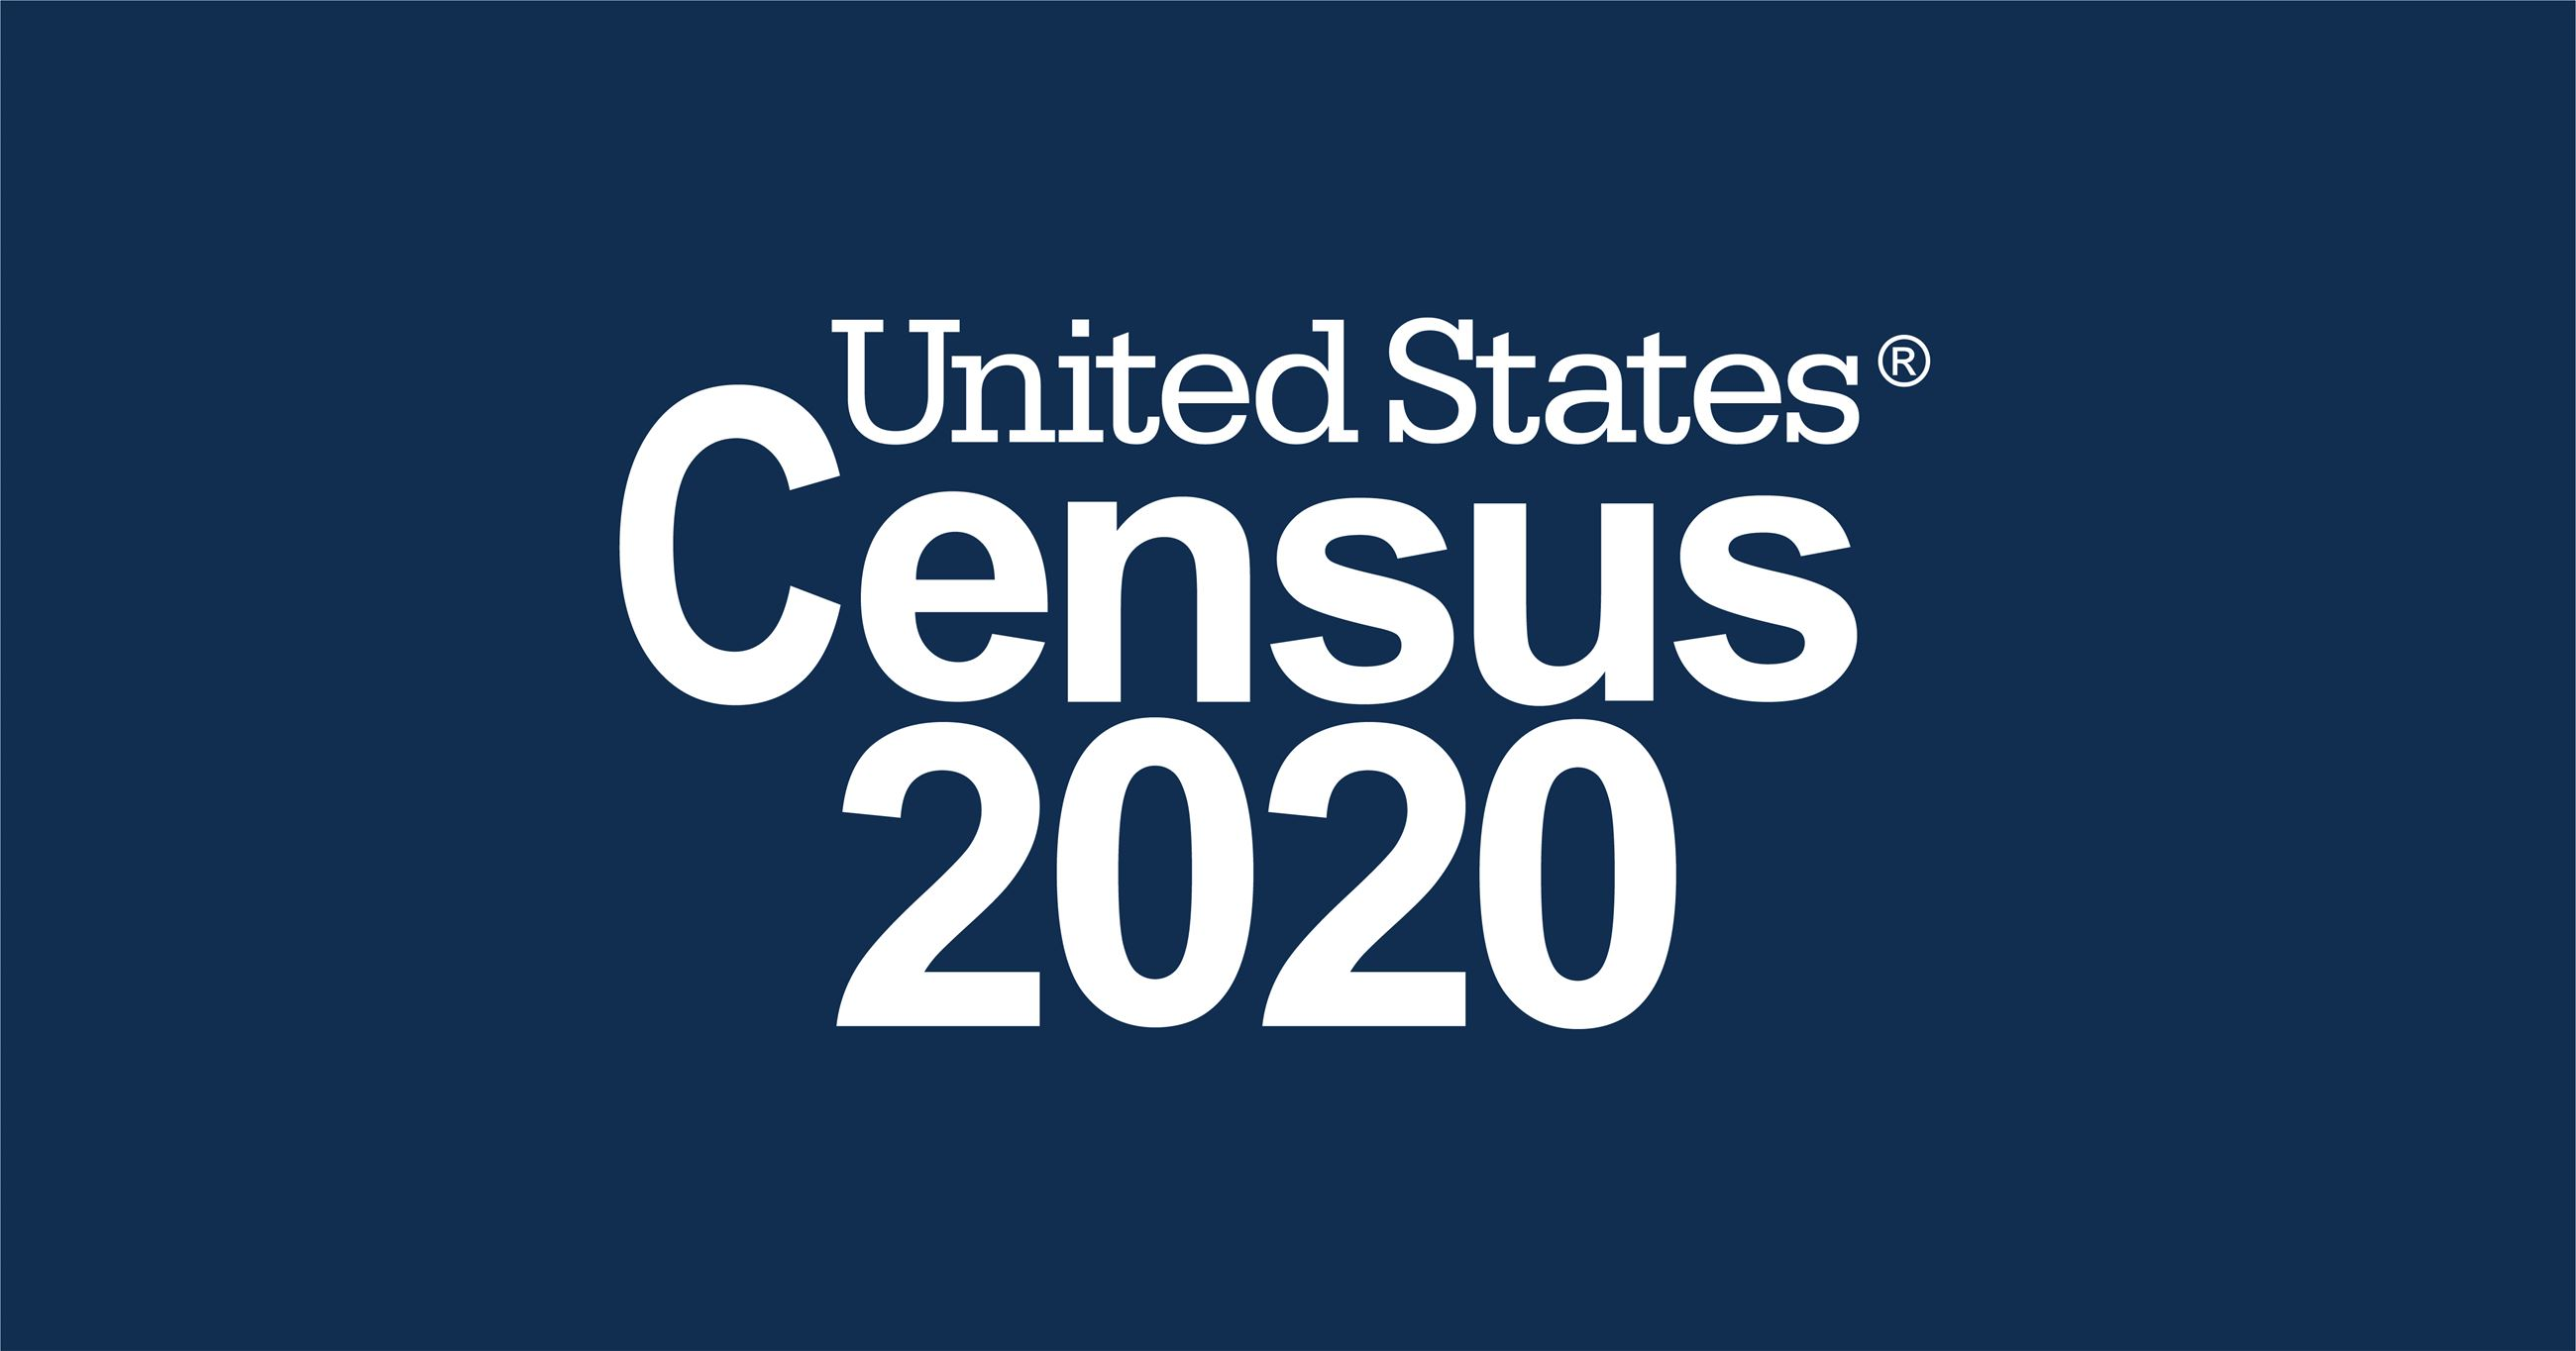 2020 Census Image